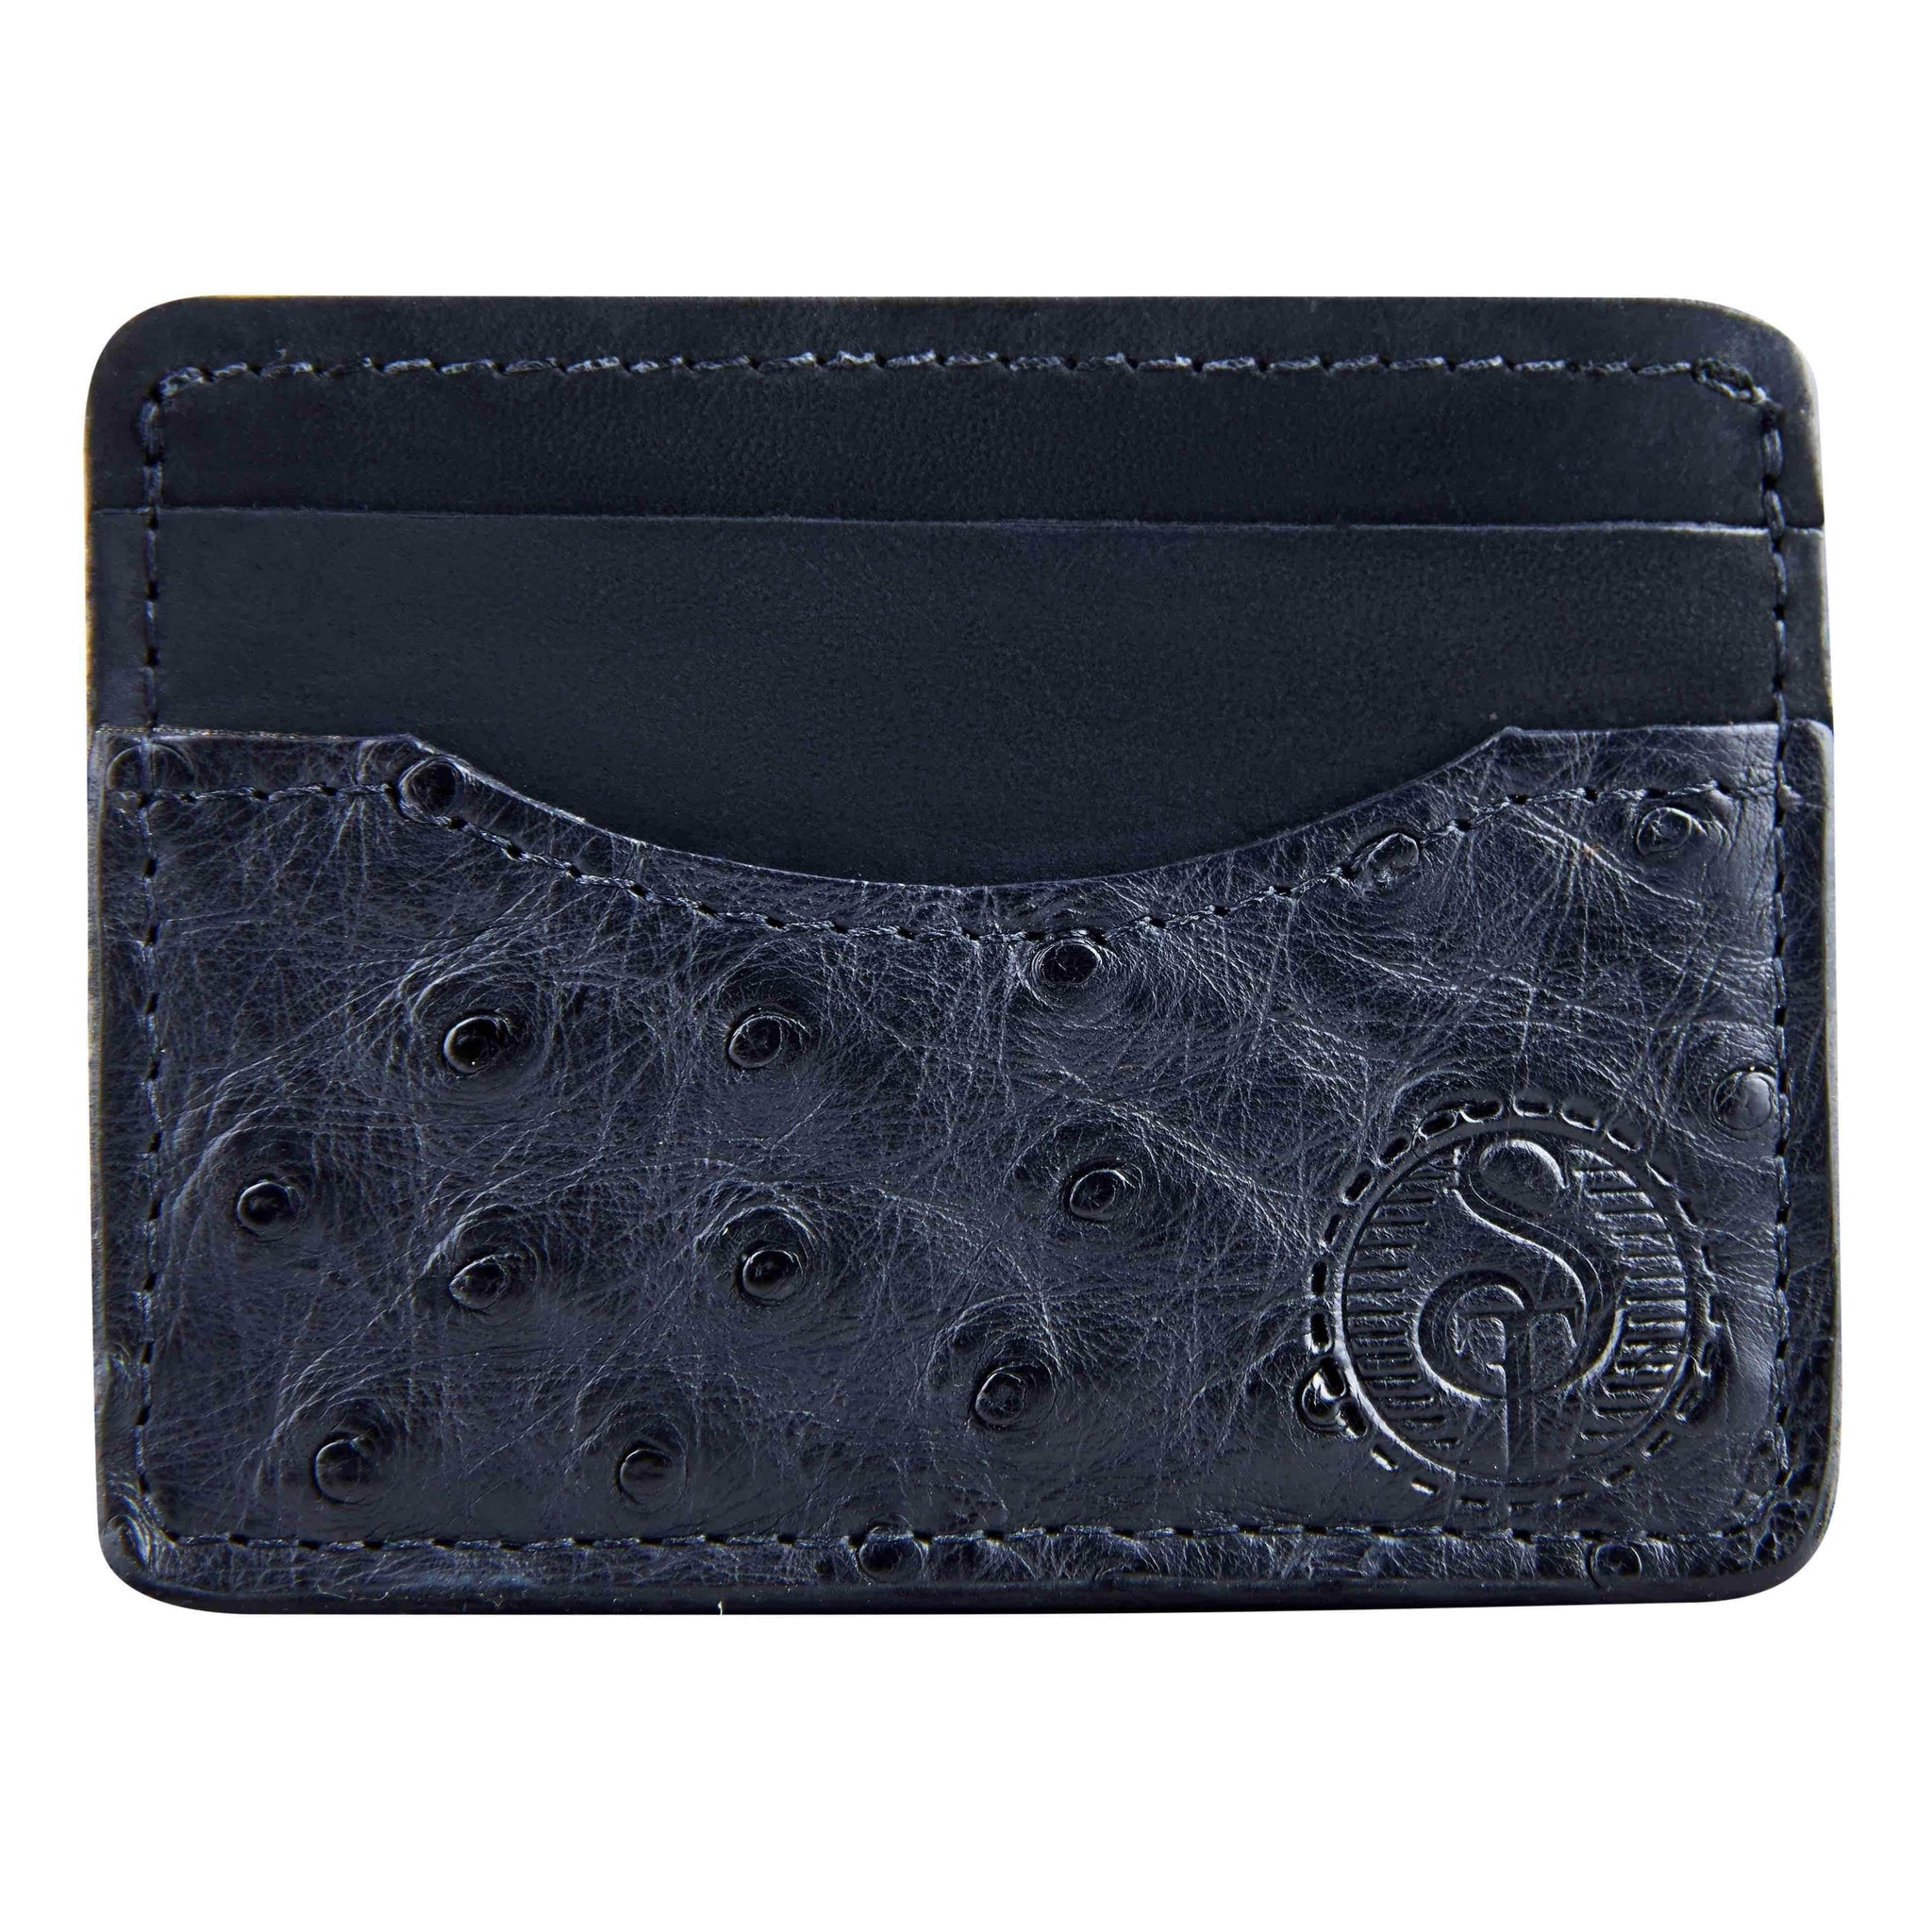 Black ostrich front pocket wallet for men